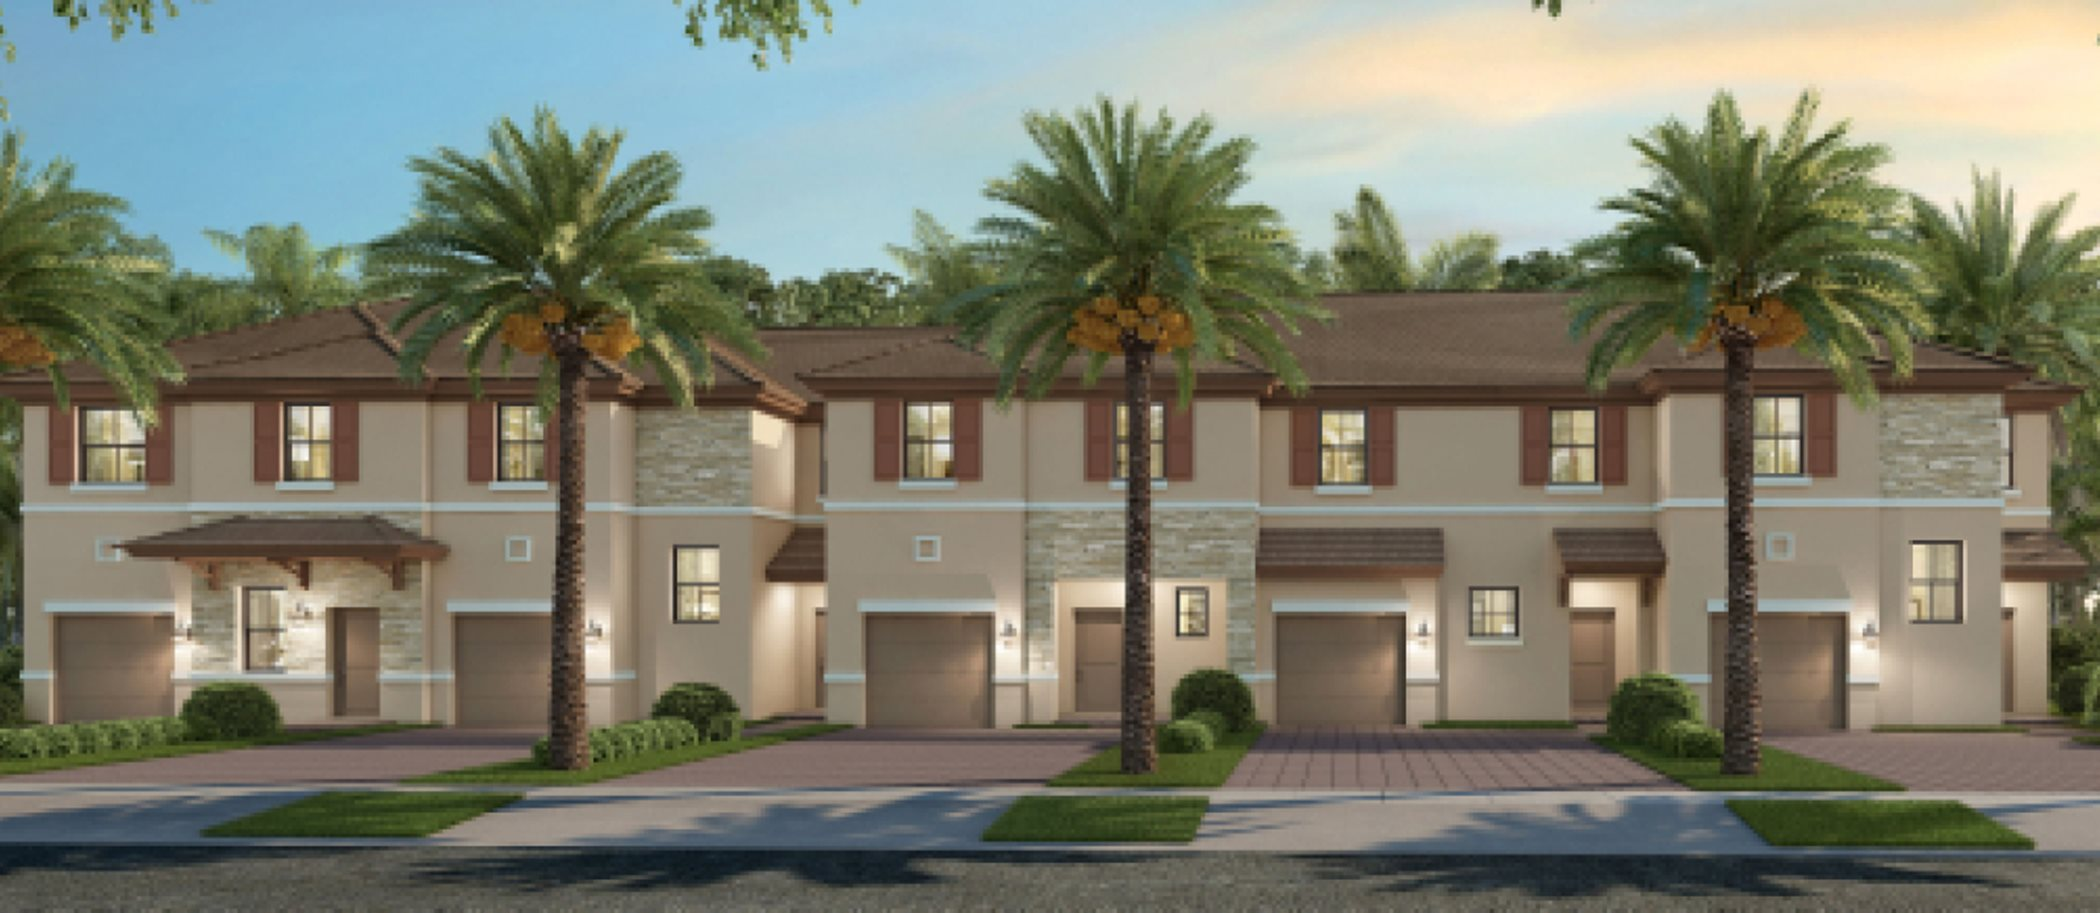 Crystal Cay west of the Florida Turnpike, offers new home designs